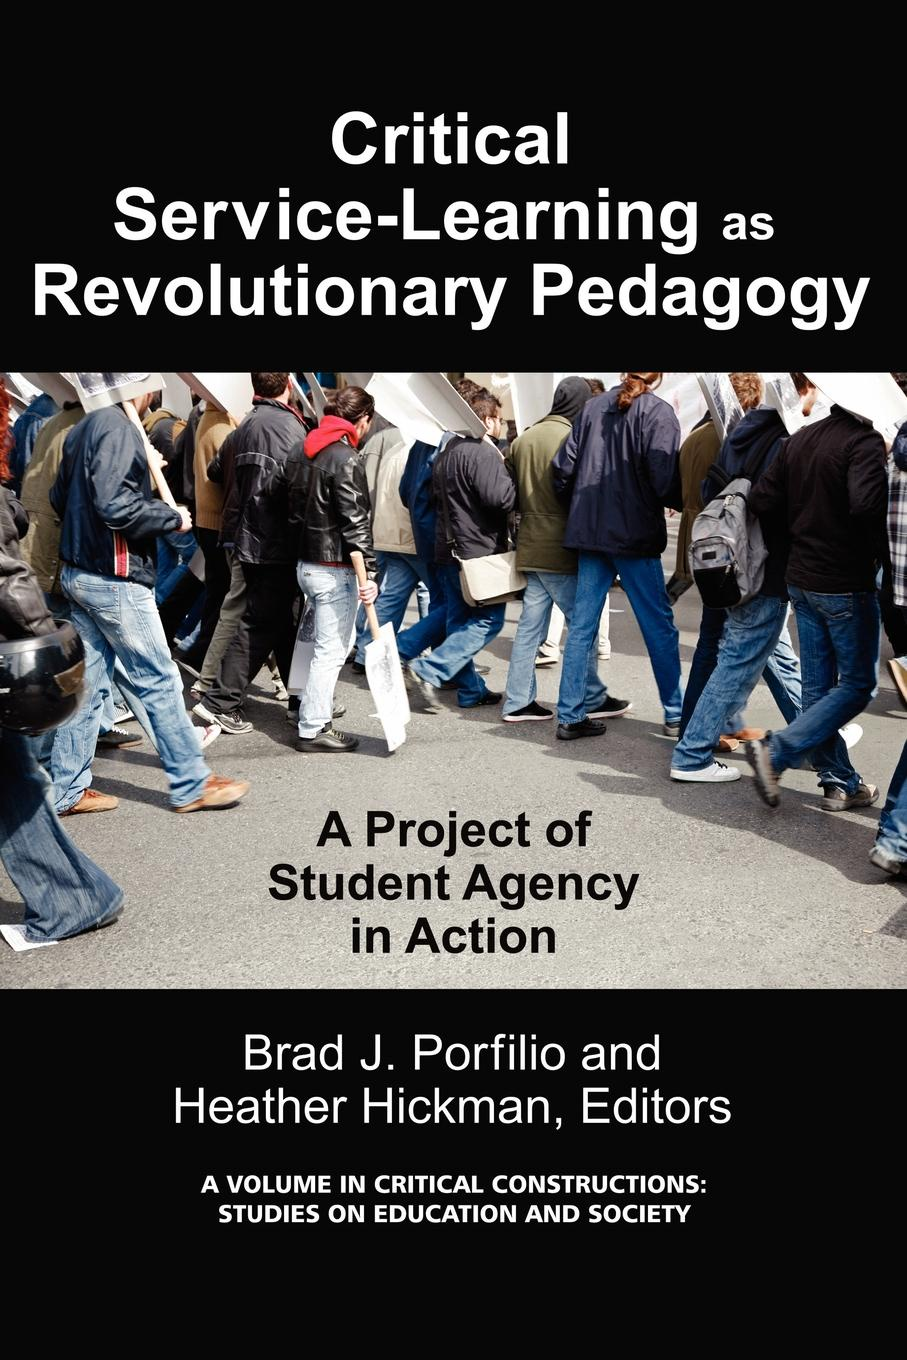 Critical-Service Learning as a Revolutionary Pedagogy. An International Project of Student Agency in Action the sojo journal educational foundations and social justice education volume 1 number 1 2015